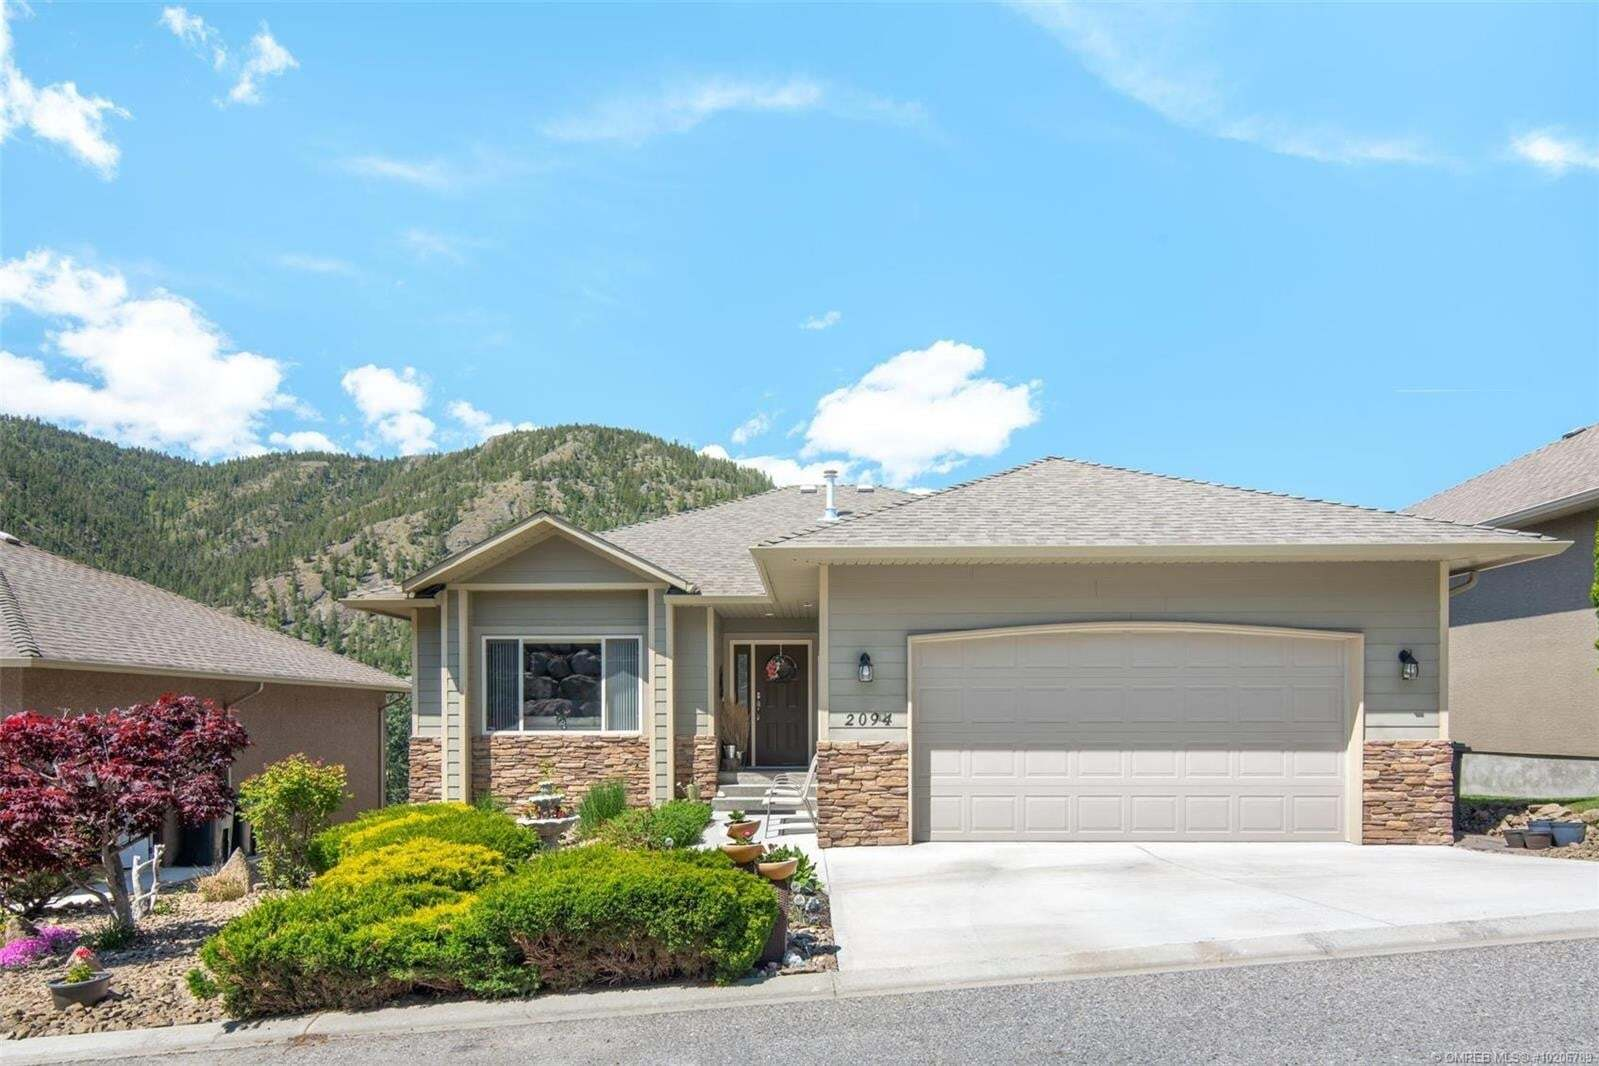 House for sale at 2094 Cornerstone Dr West Kelowna British Columbia - MLS: 10206789